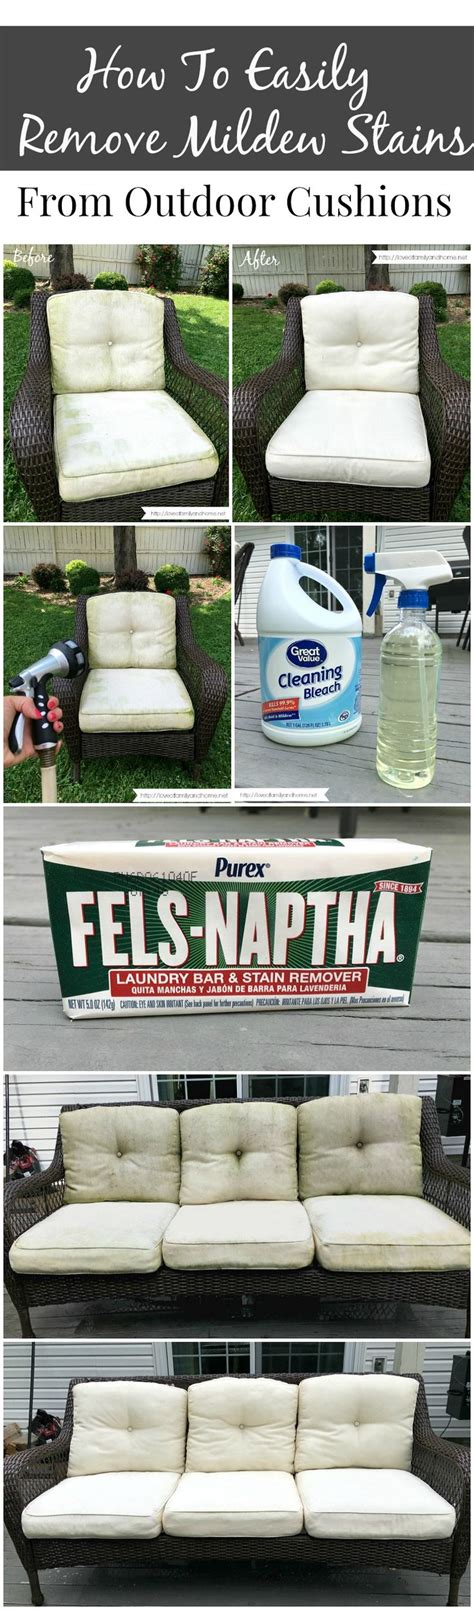 How To Remove Mold From Patio Cushions 25 Best Ideas About Outdoor Cushions On Pinterest Cheap